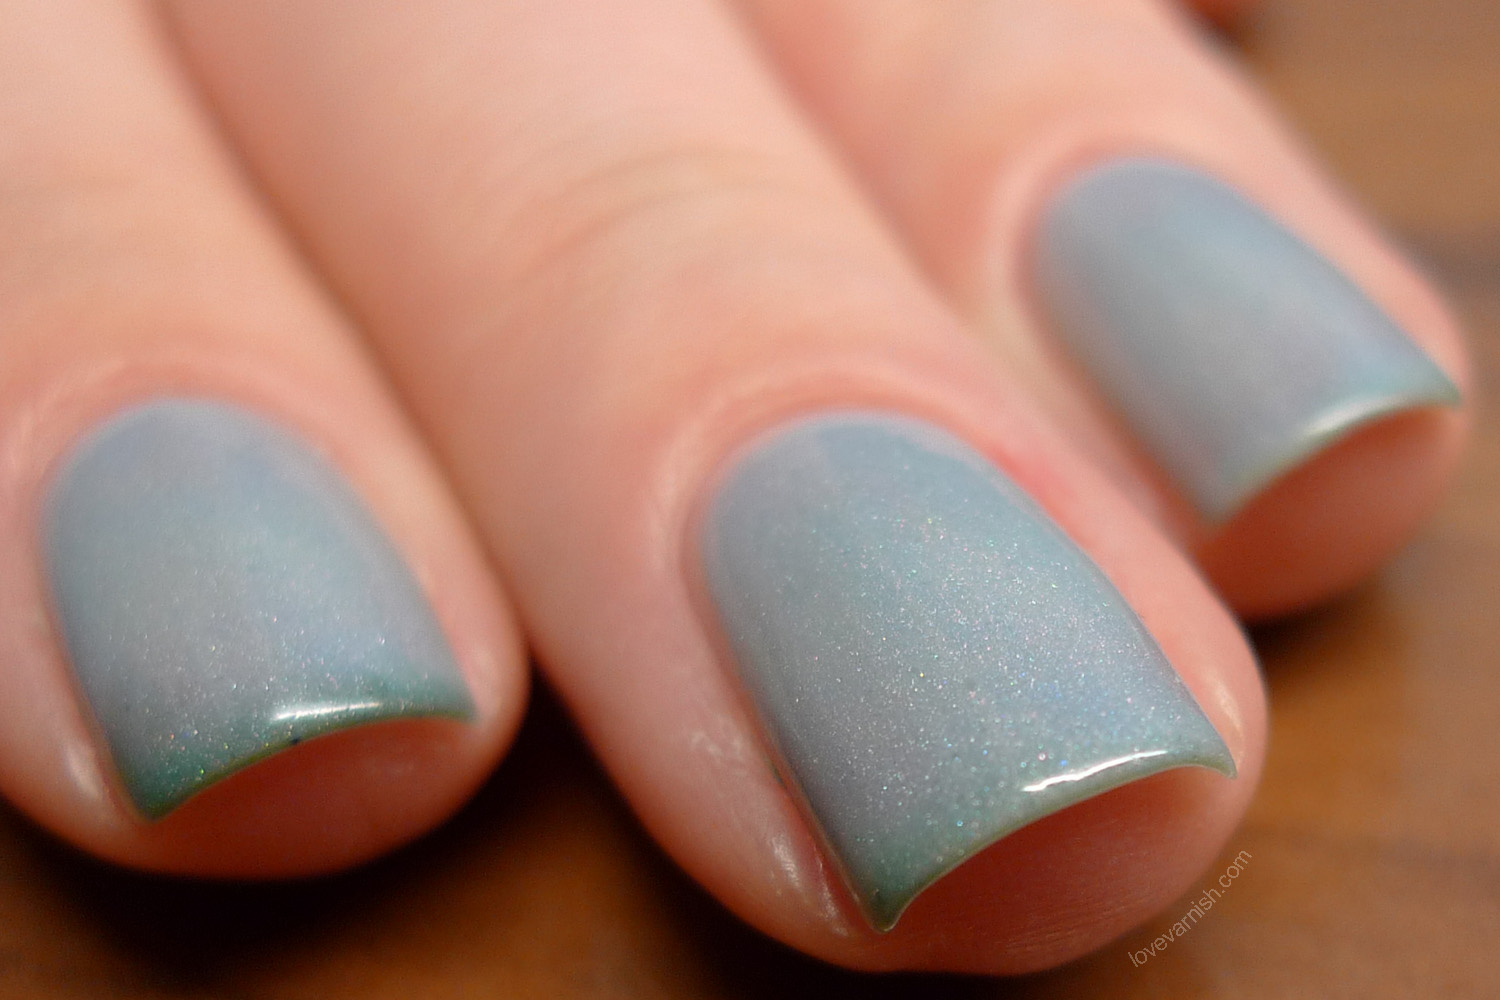 Pretty & Polished Tomboyish teal thermal polish